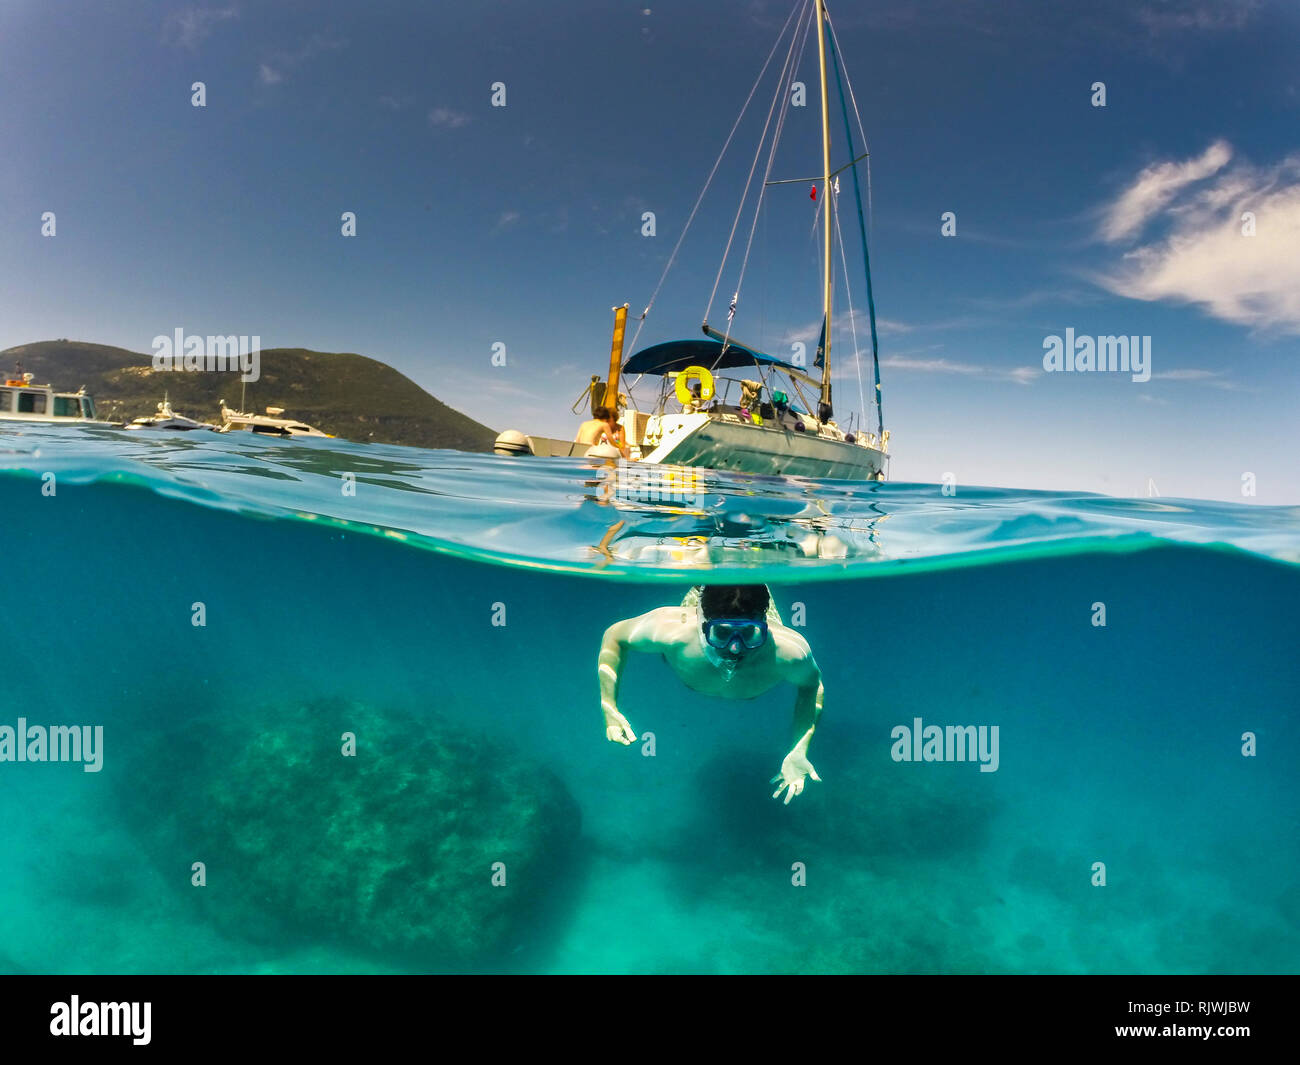 Split level photo of a Man swimming in clear blue sea with a yacht in the background half the shot above water and half in the sea using a Dome camera - Stock Image